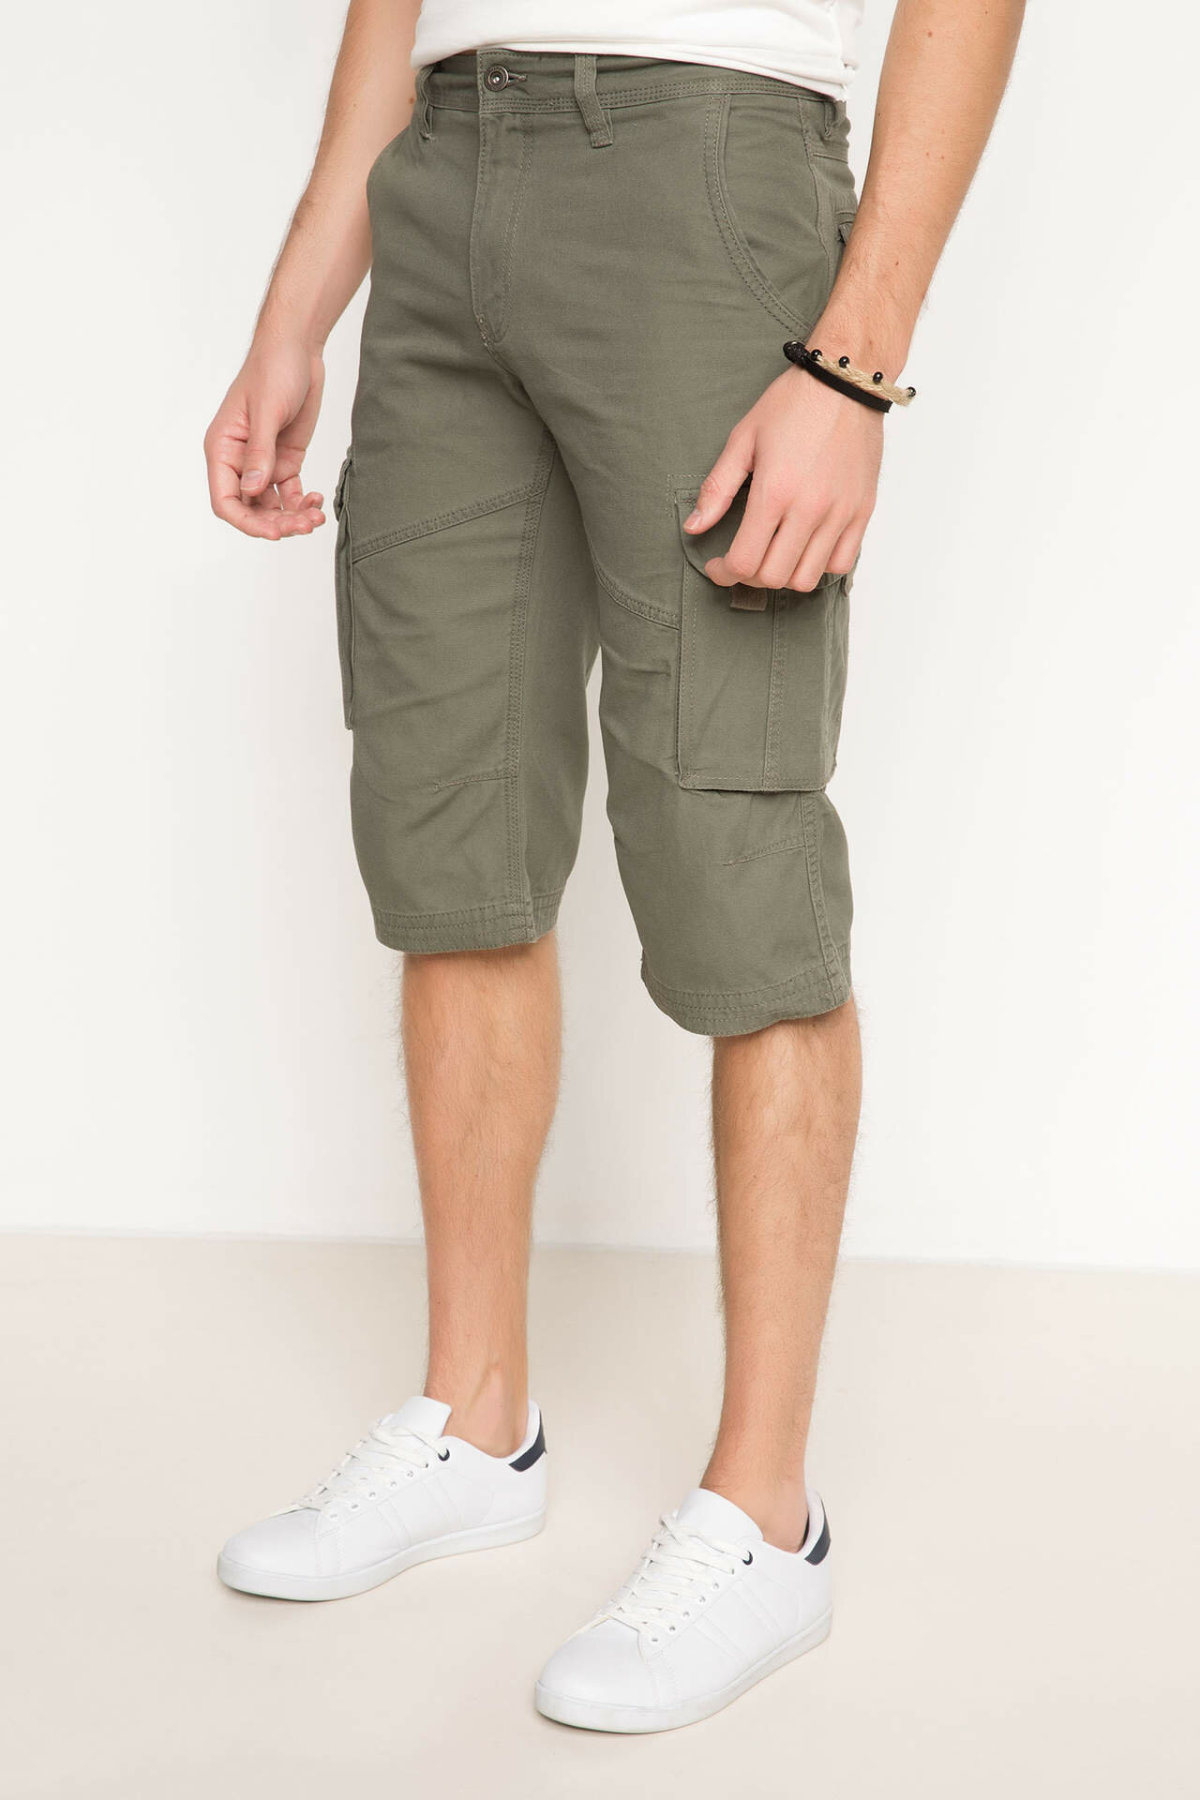 DeFacto Fashion Man Loose Pants Male Casual Cargo Shorts Men's Loose Leisure Summer New - G8337AZ17HS